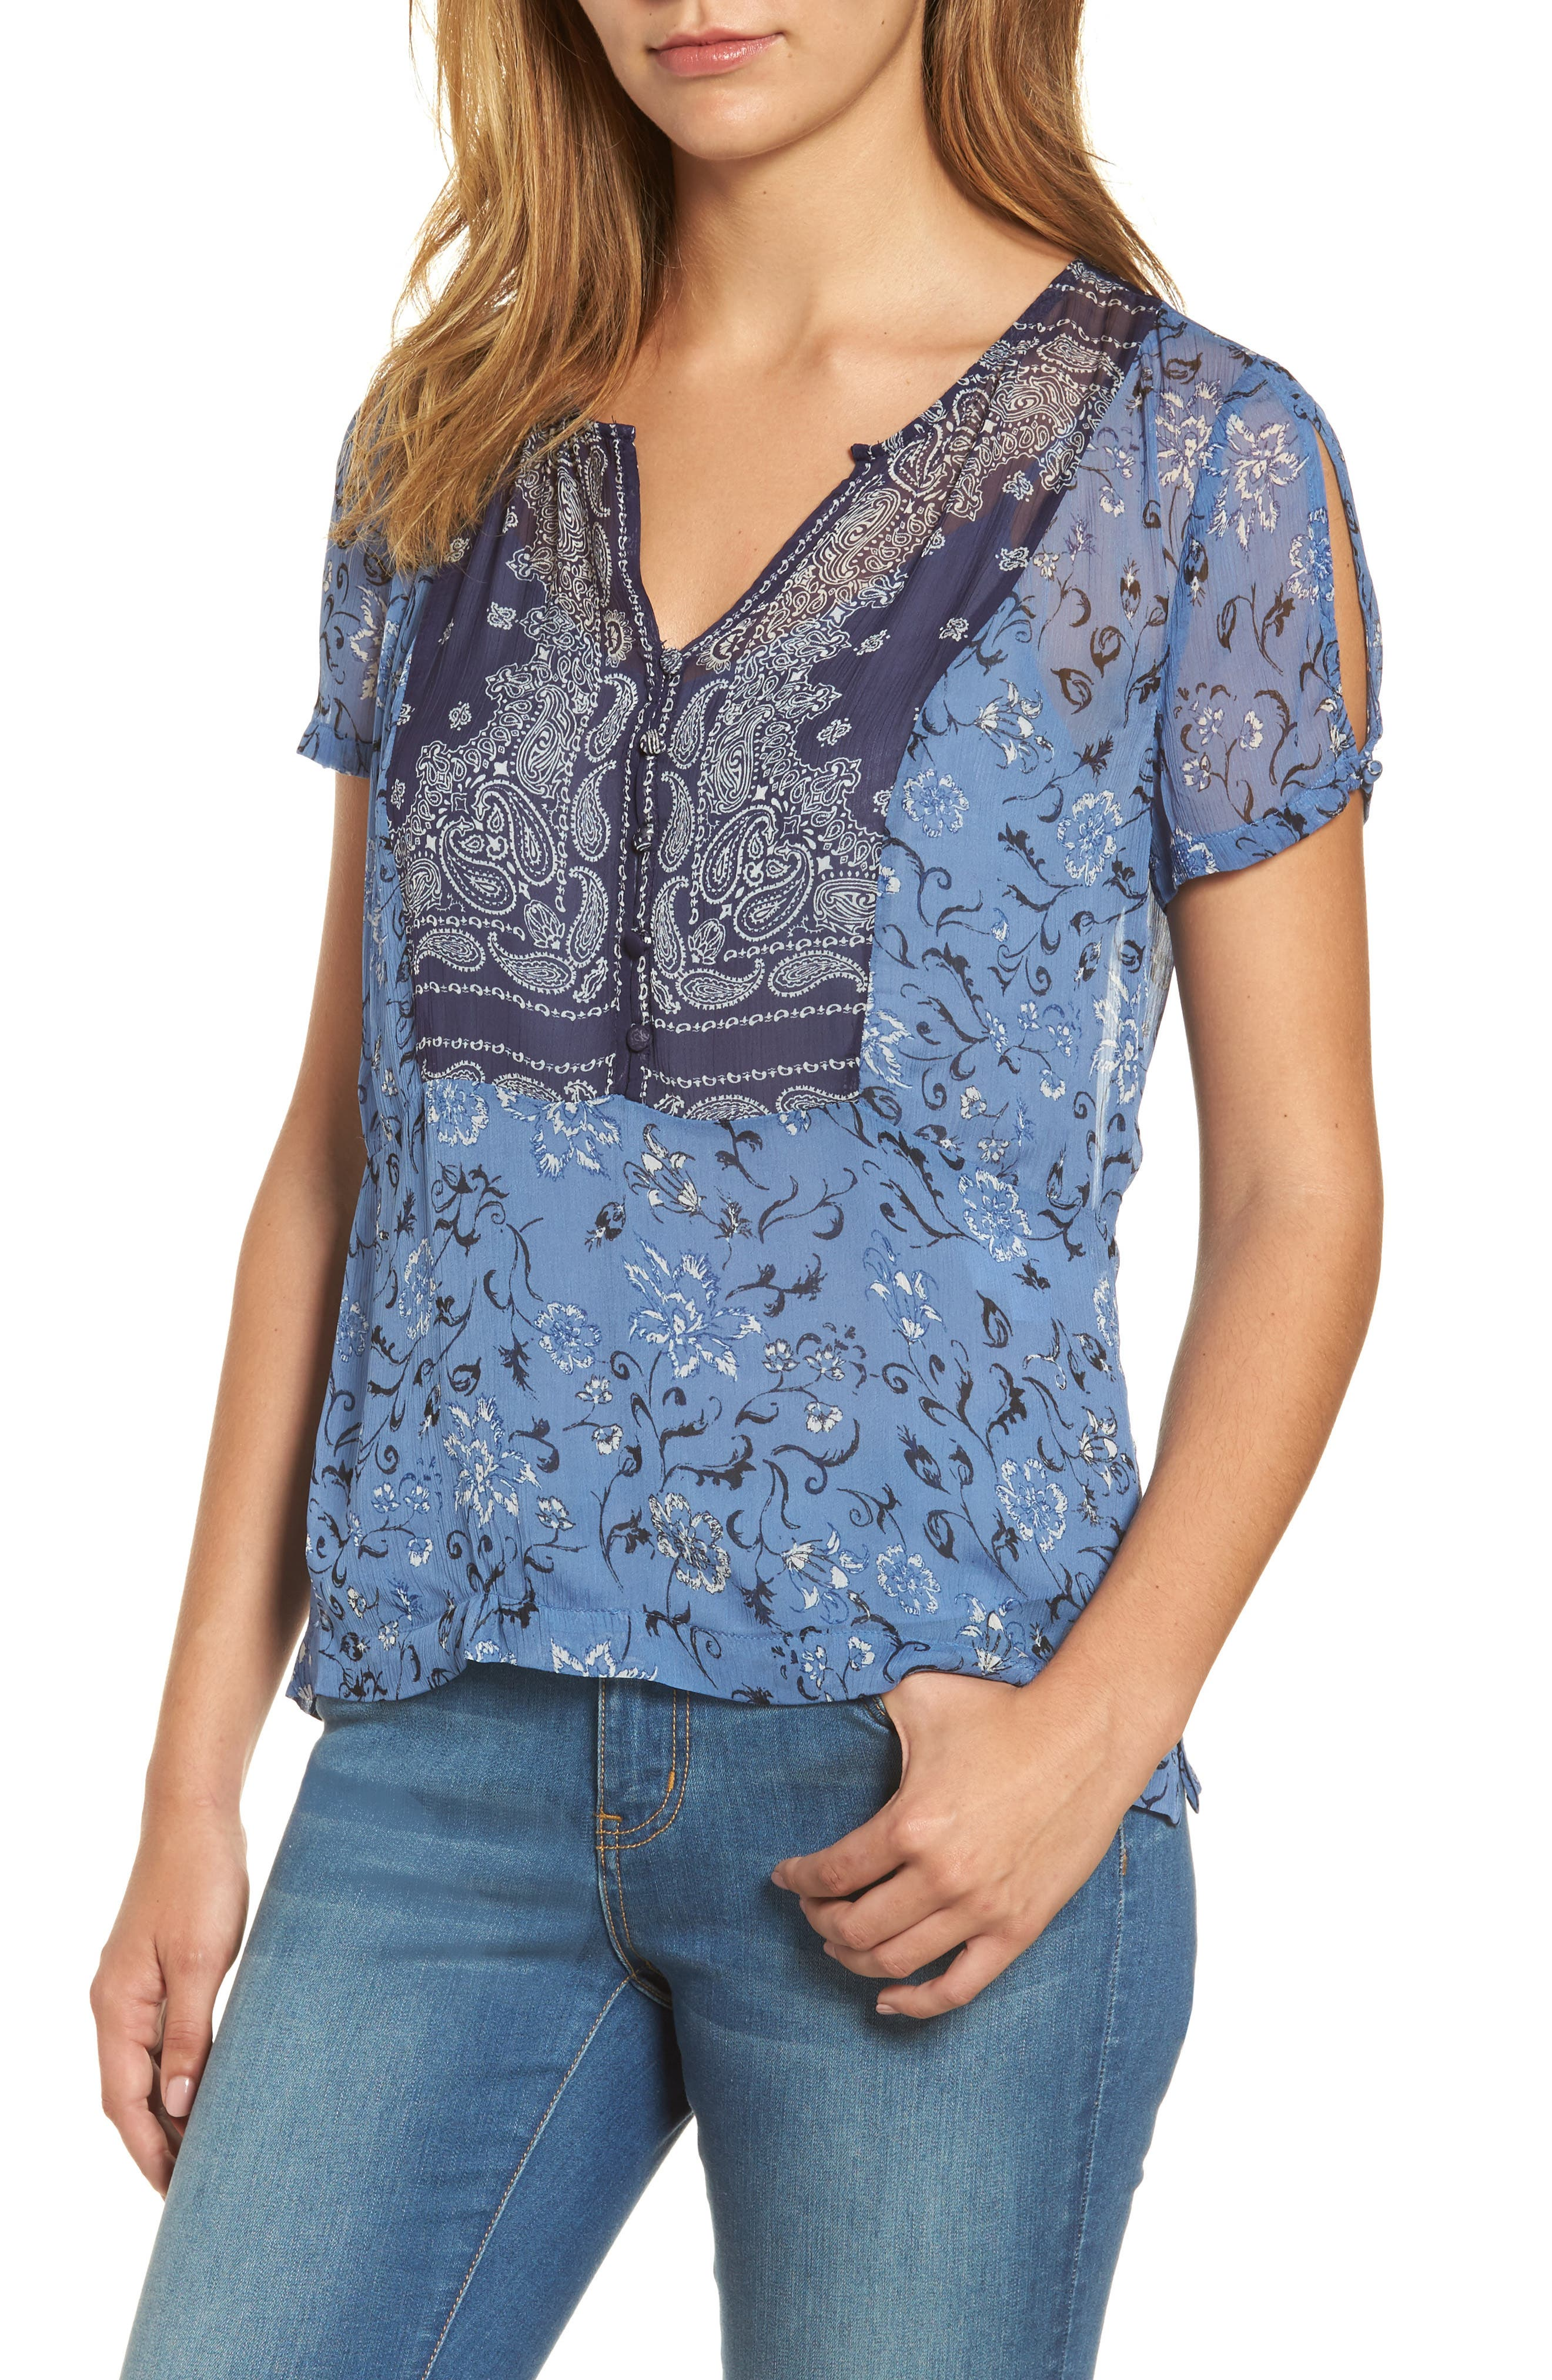 Lucly Brand Mixed Scarf Print Top